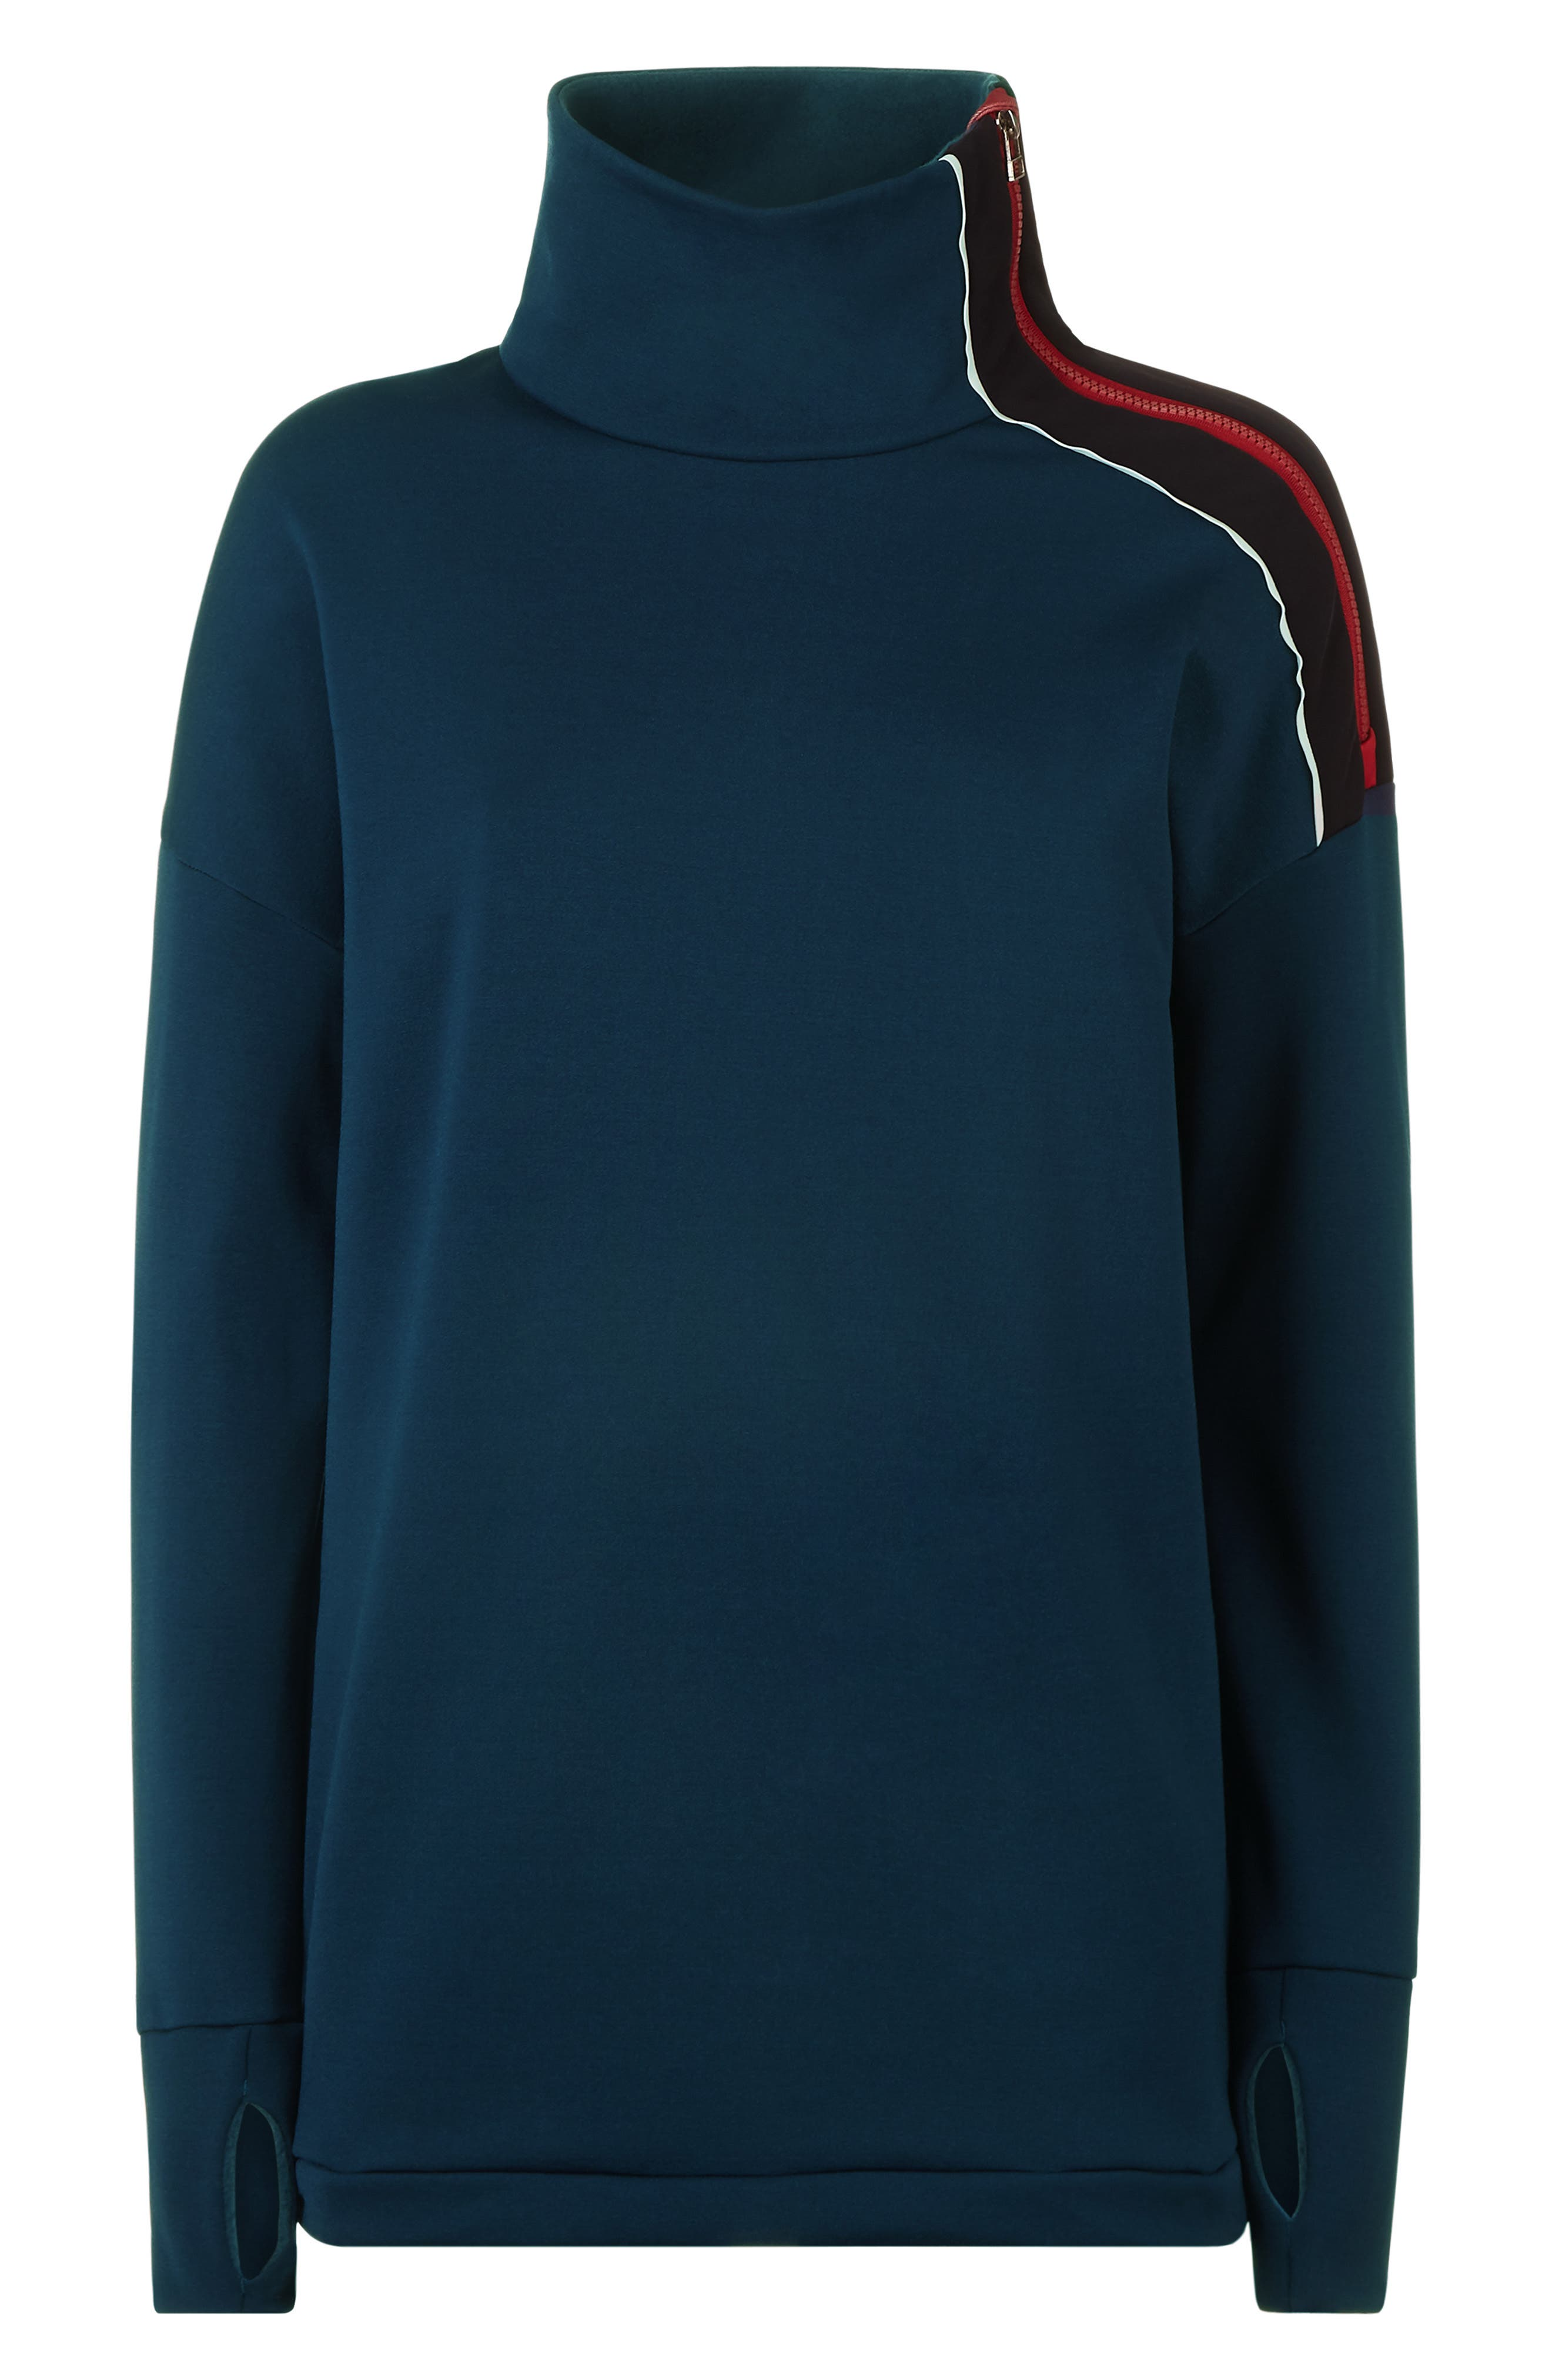 Infield Thermal Pullover,                             Alternate thumbnail 6, color,                             400